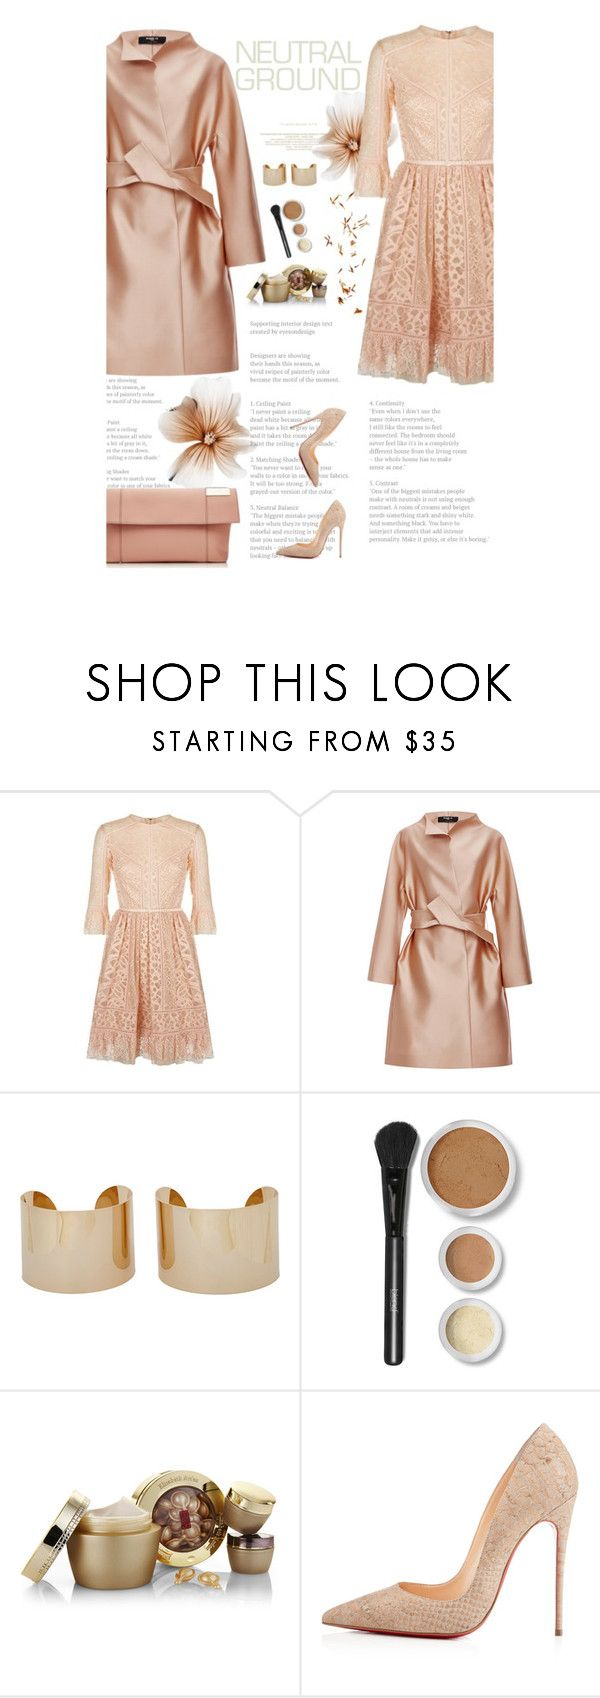 """""""Cool Neutrals"""" by amimcqueen ❤ liked on Polyvore featuring Elie Saab, Paule Ka, Maison Margiela, Blend Minerals, Elizabeth Arden, Christian Louboutin and Victoria Beckham"""